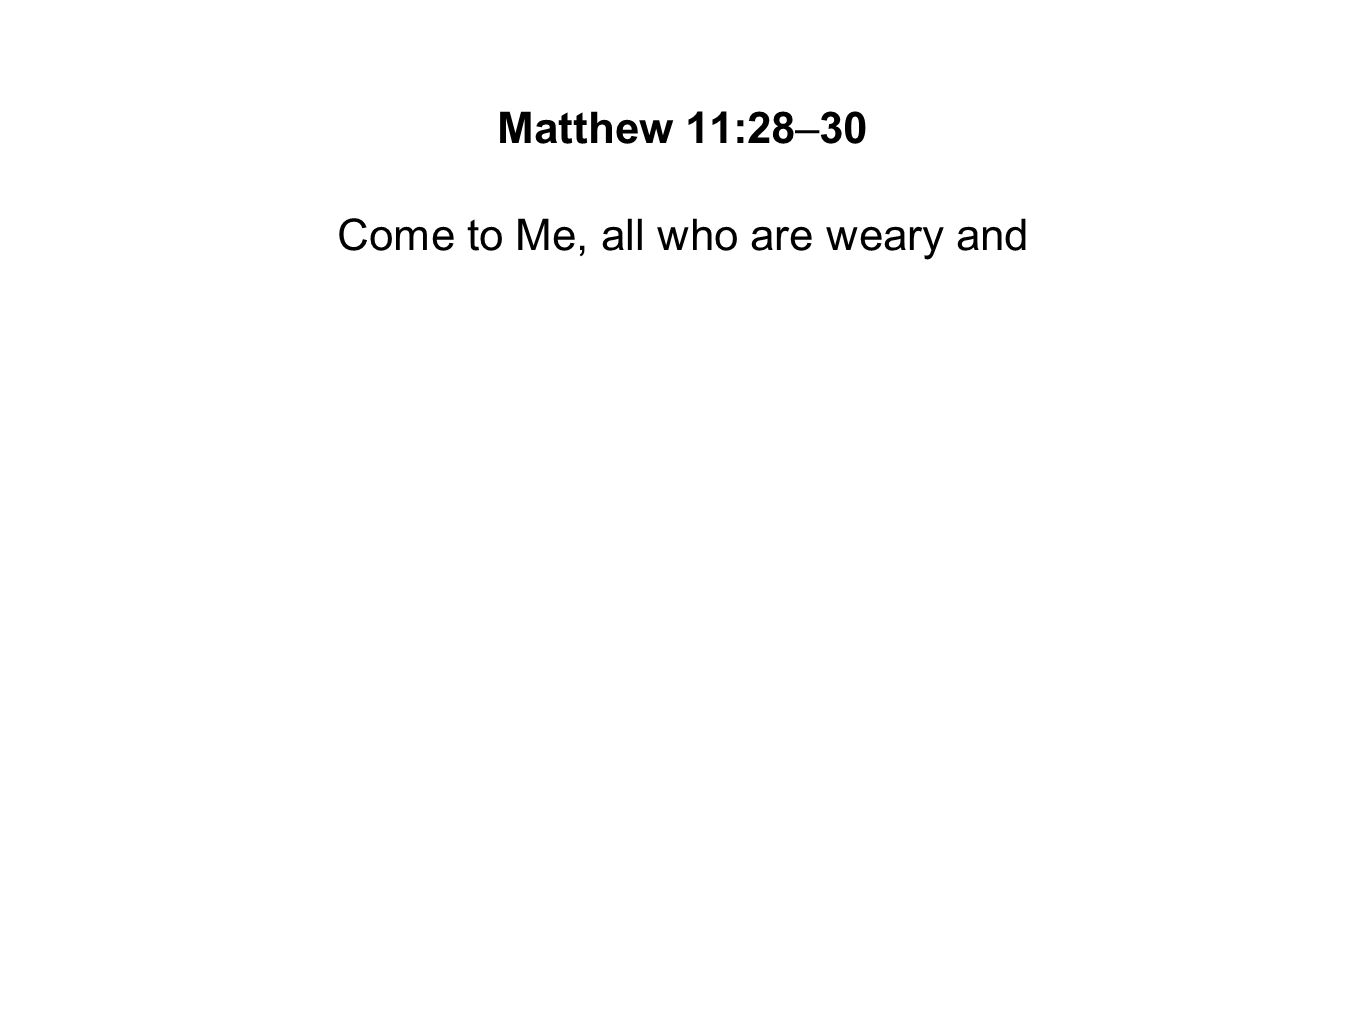 Come to Me, all who are weary and